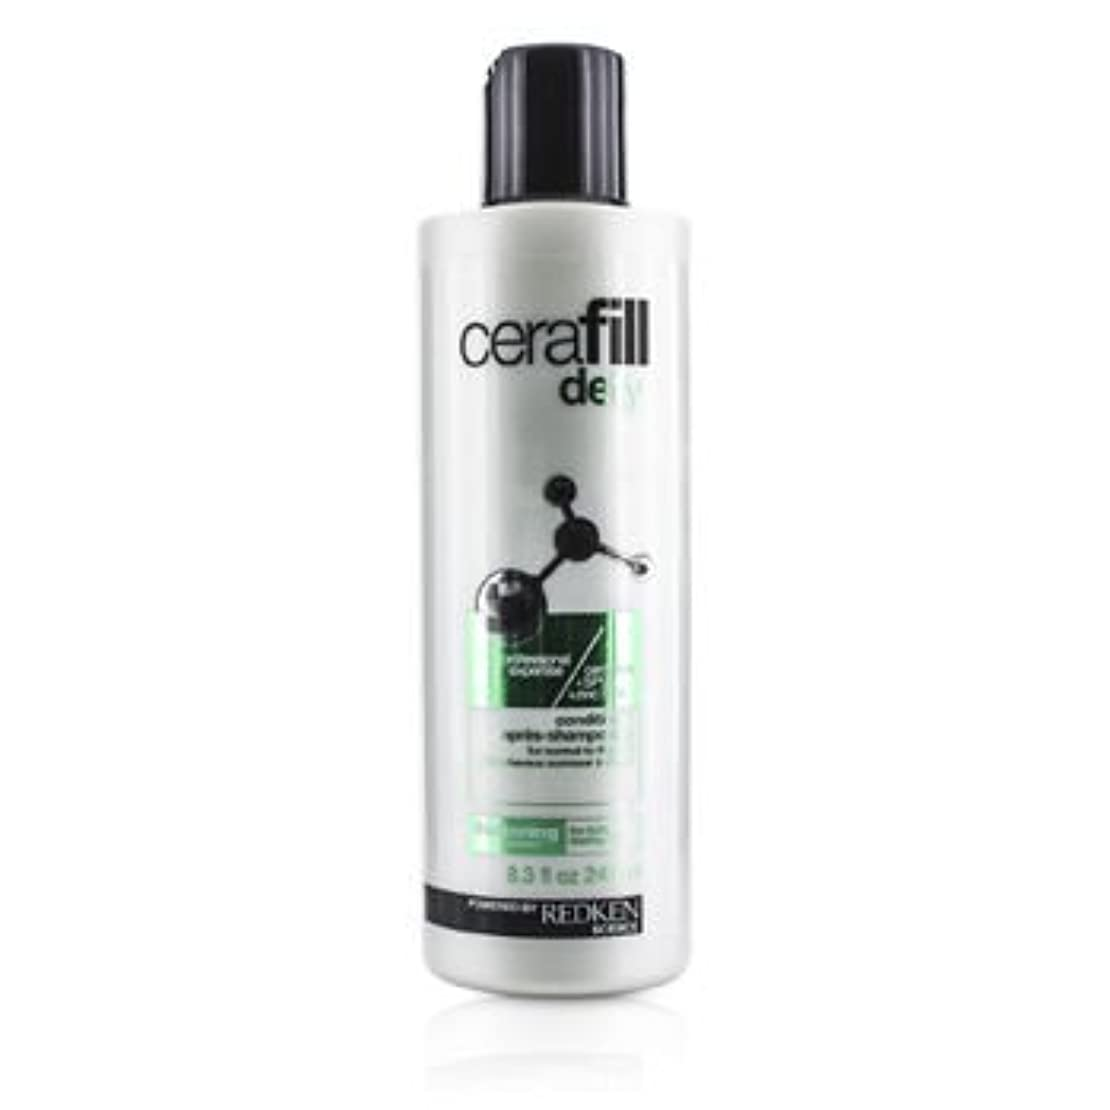 割れ目抑制証言する[Redken] Cerafill Defy Thickening Conditioner (For Normal to Thin Hair) 245ml/8.3oz